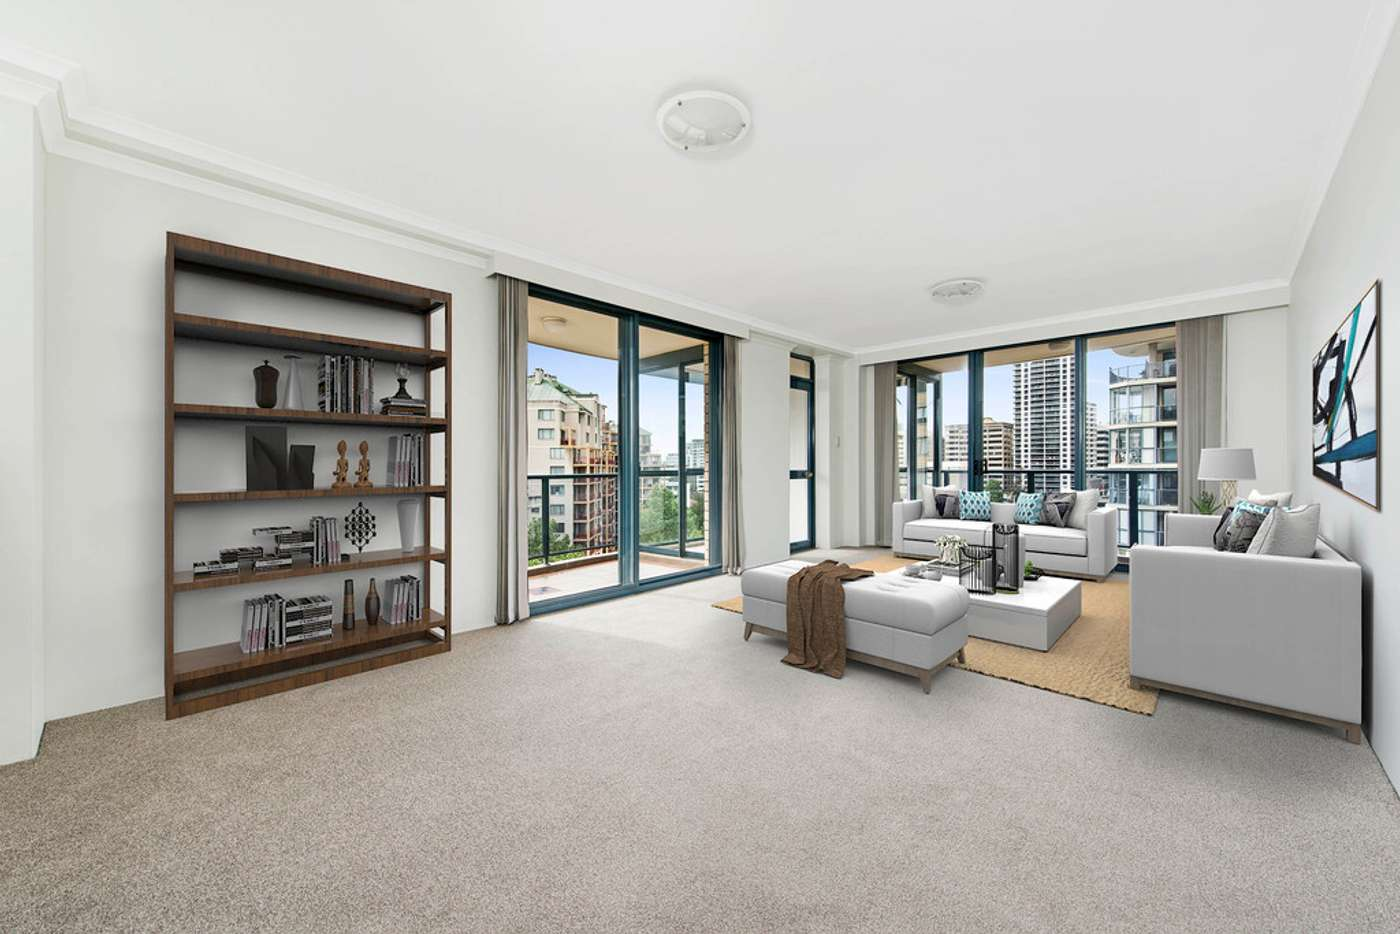 Main view of Homely apartment listing, 66/19-23 Herbert Street, St Leonards NSW 2065